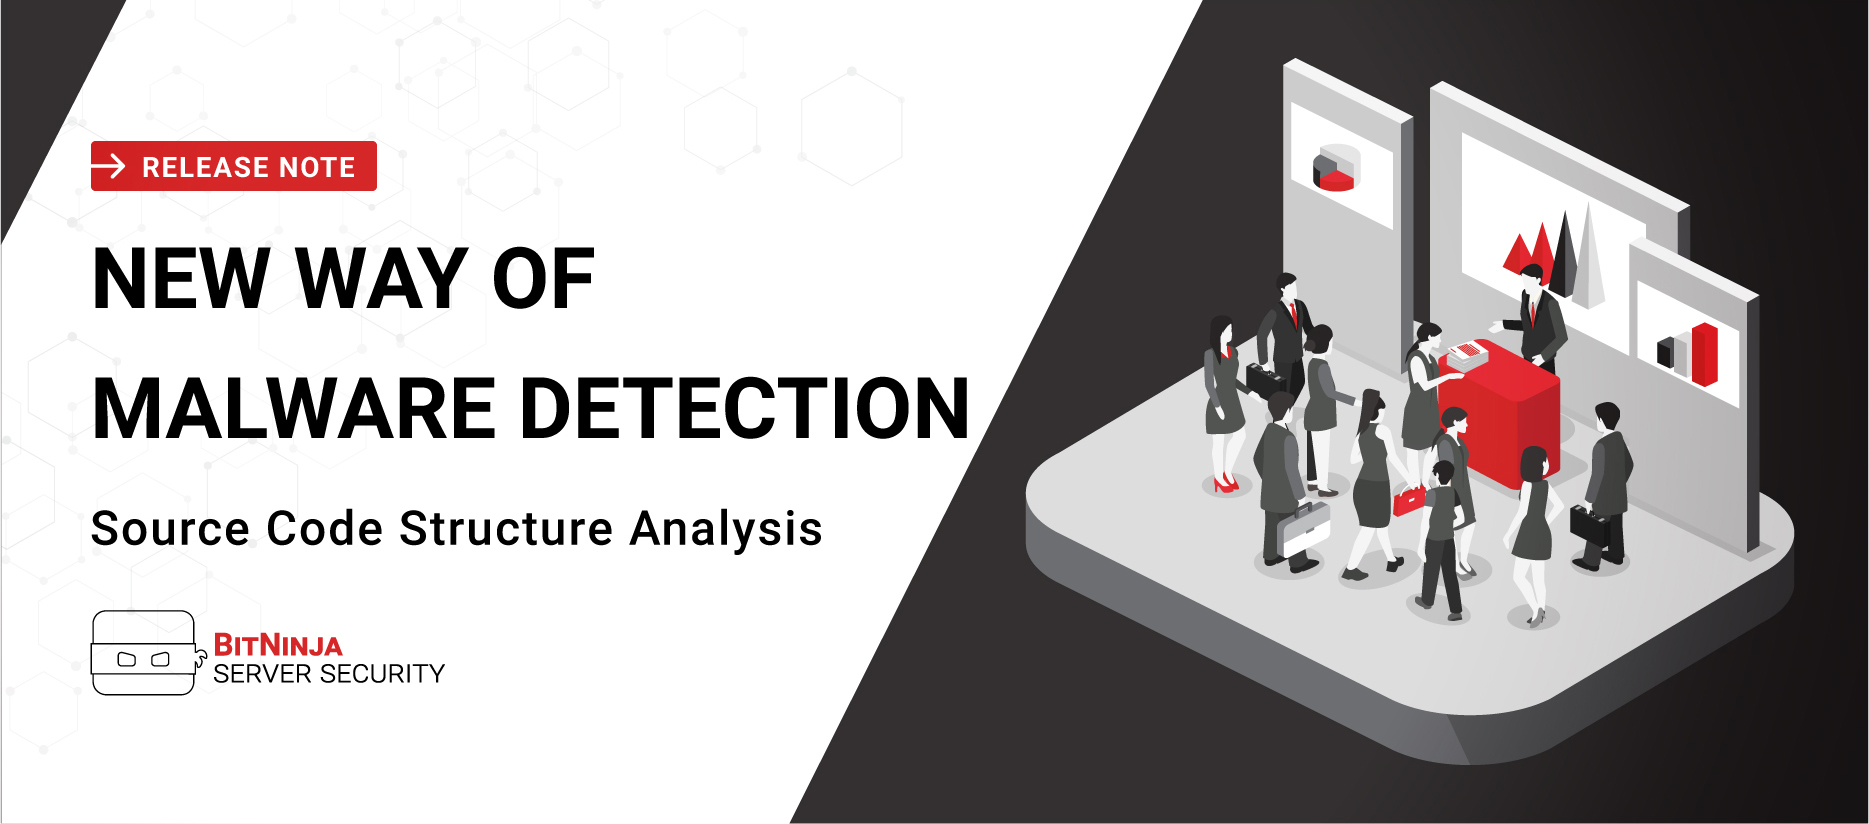 Release Note - New Way of Malware Detection